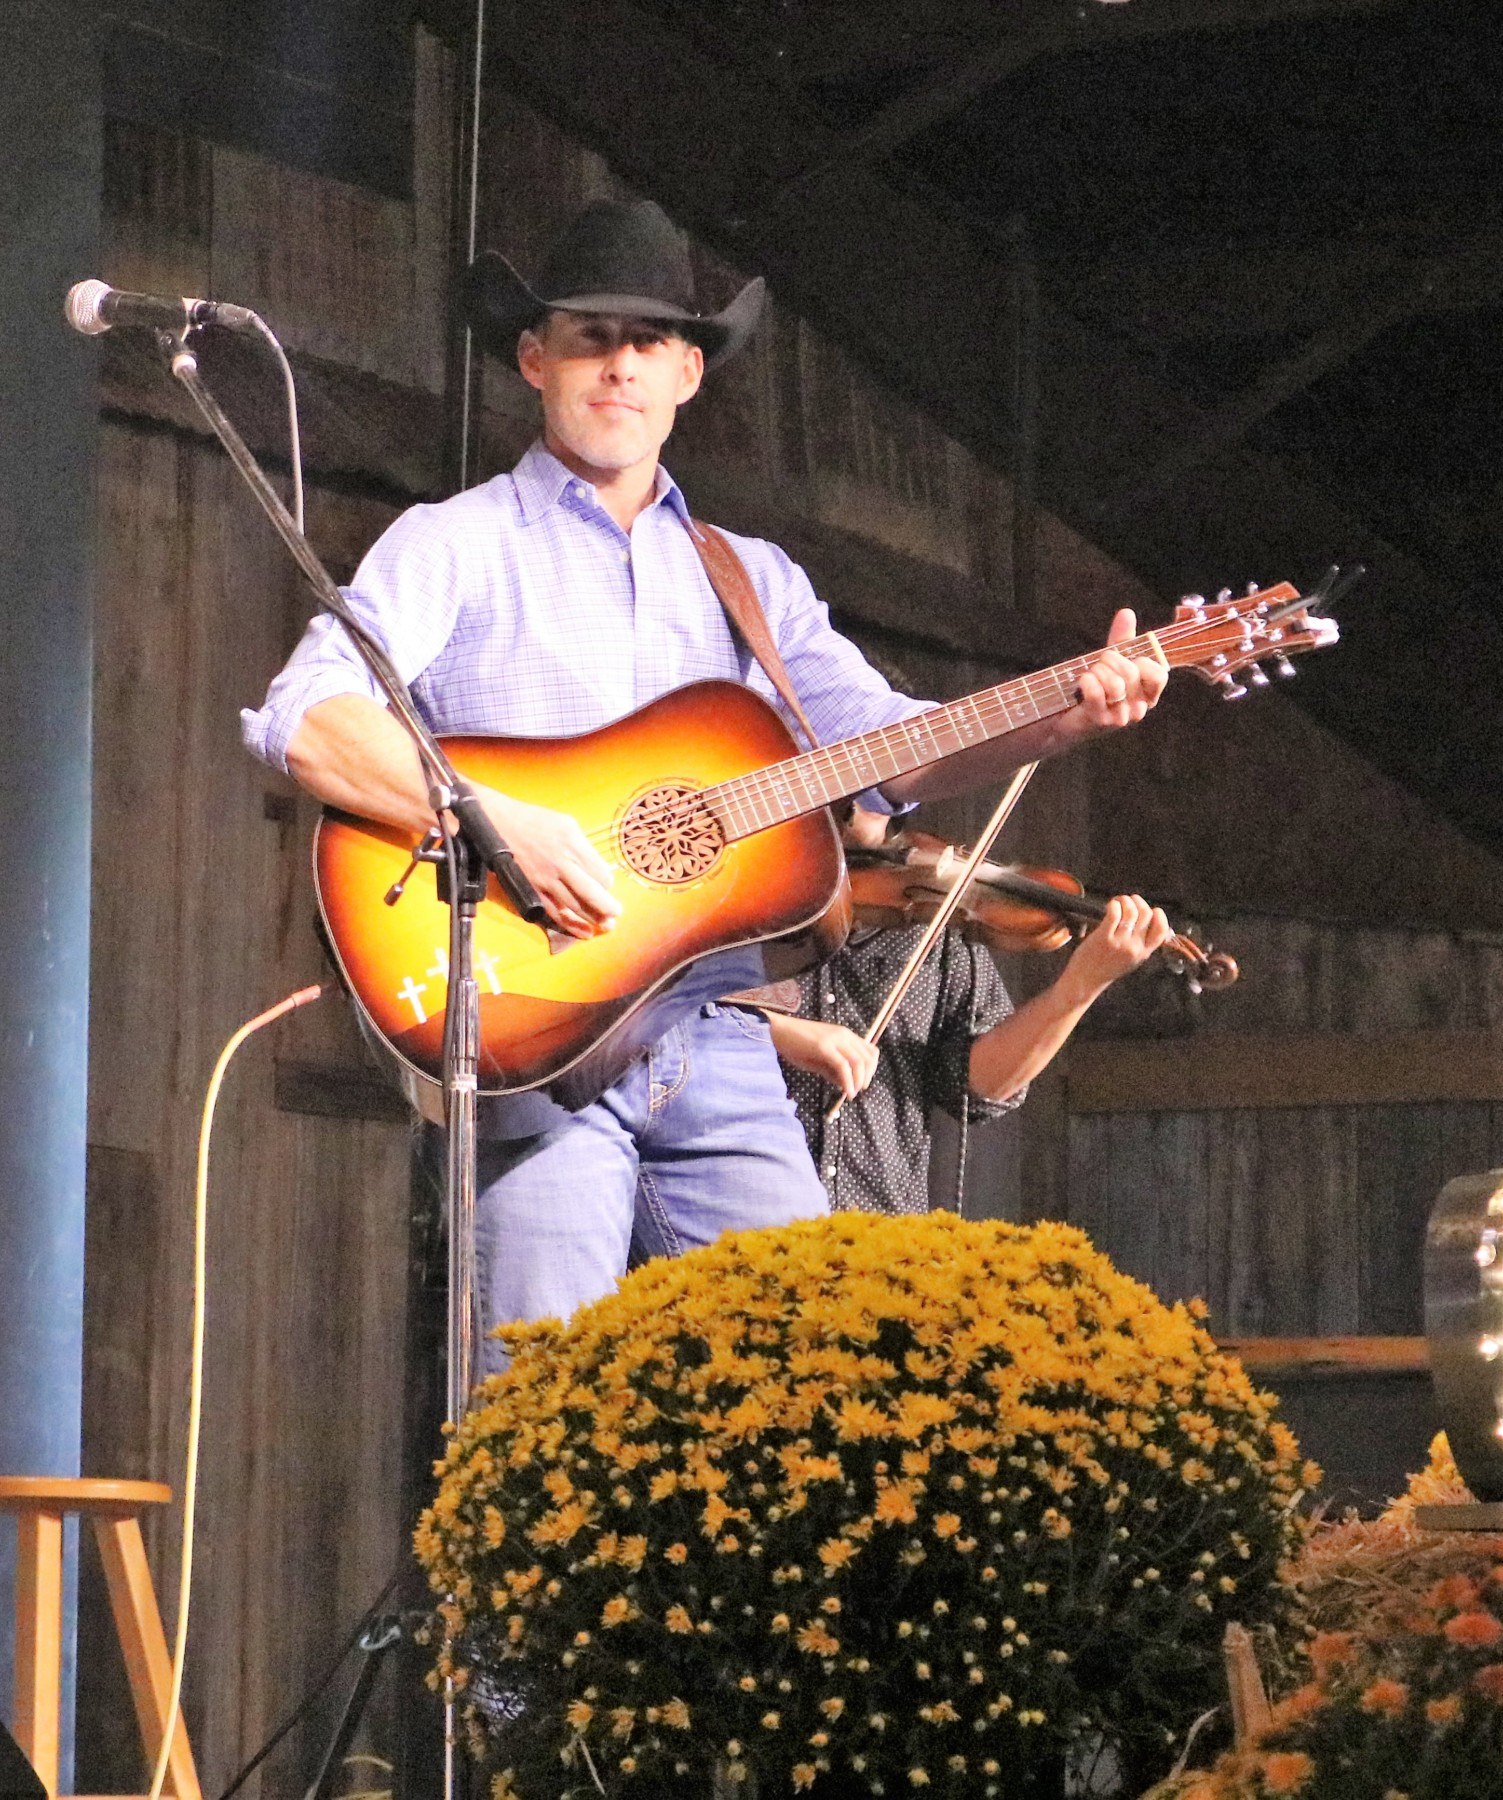 Choices Banquet Aaron Watson 2